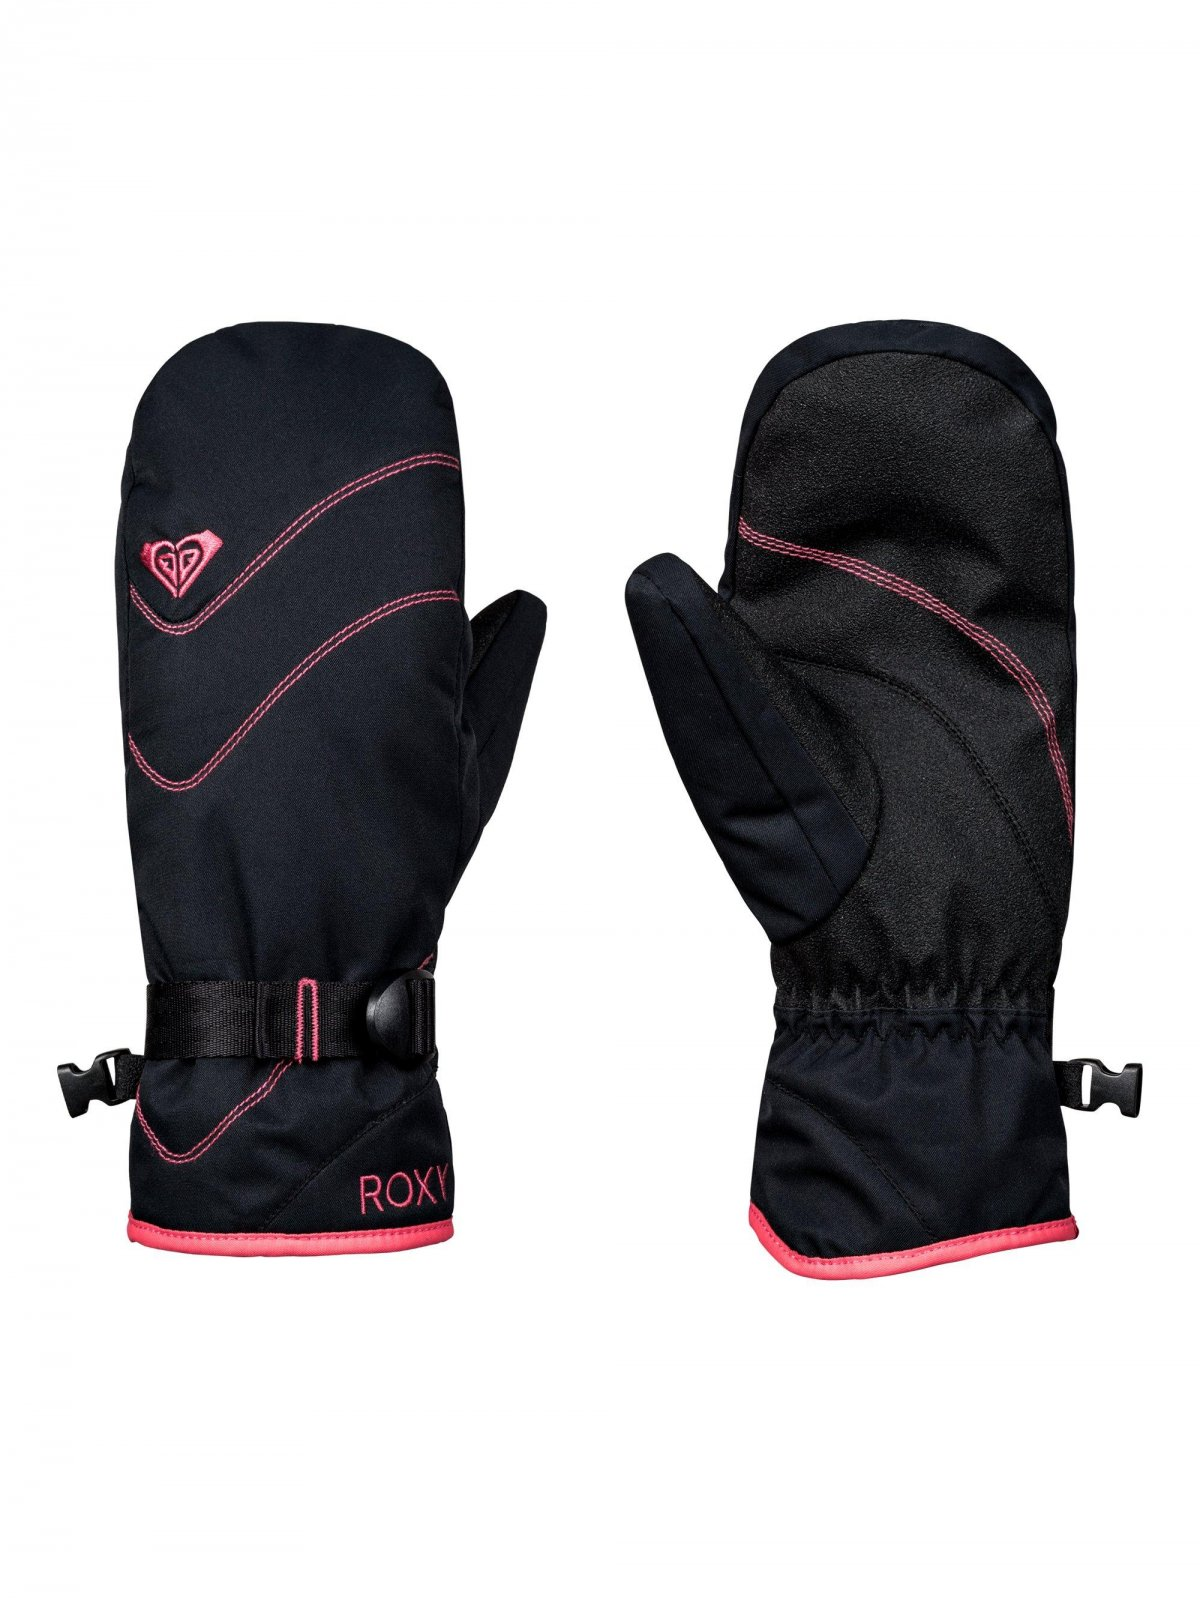 2018/19 Roxy Jetty Solid Mitt